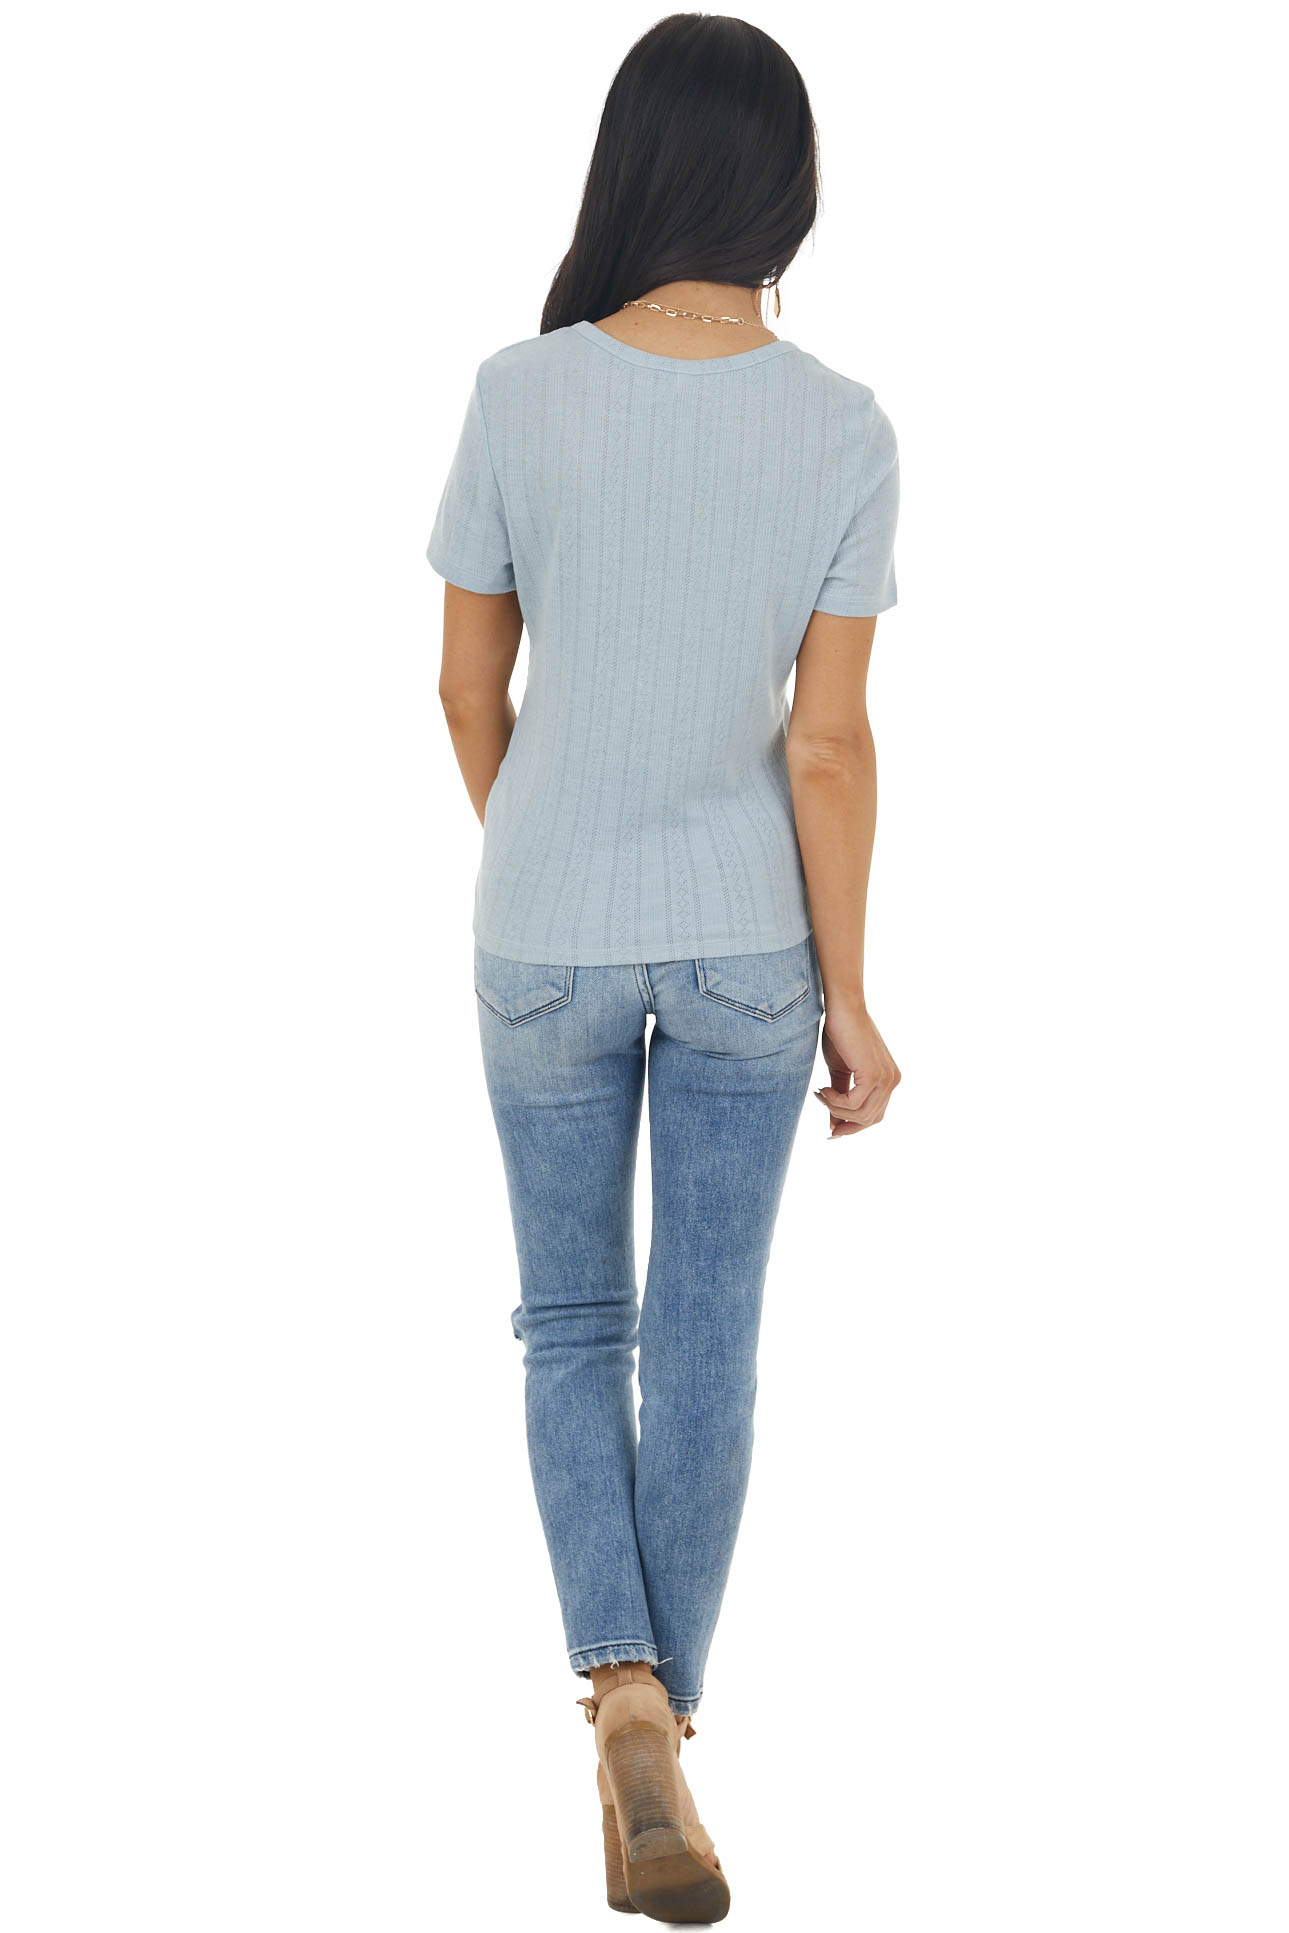 Sky Blue Textured Stretchy Knit Short Sleeve Henley Top